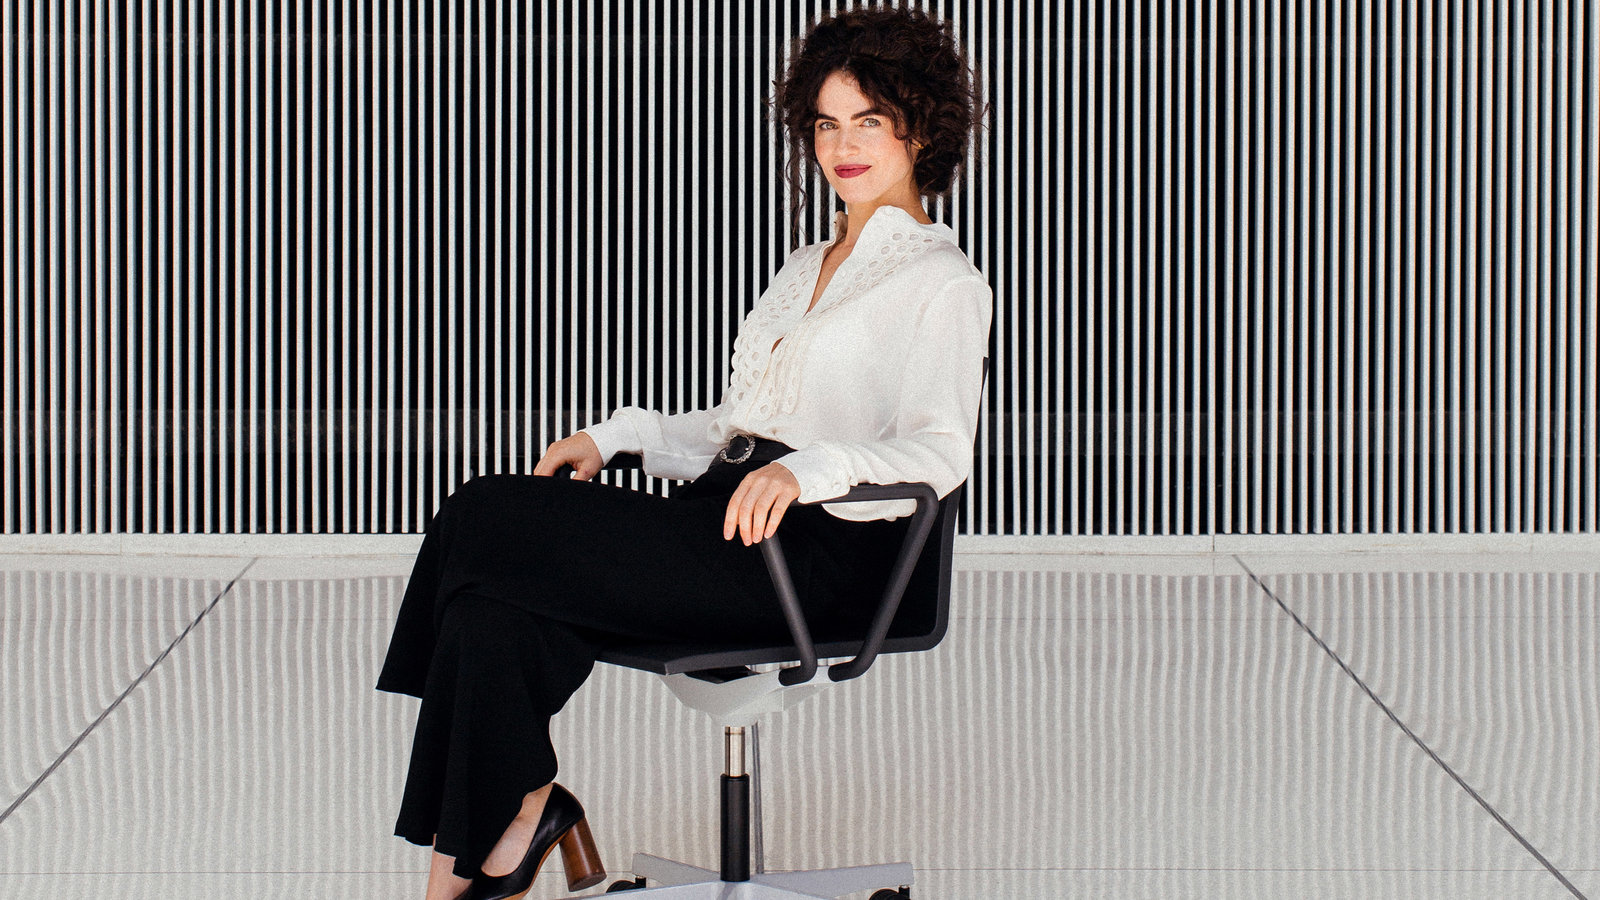 Who Is Neri Oxman The New York Times